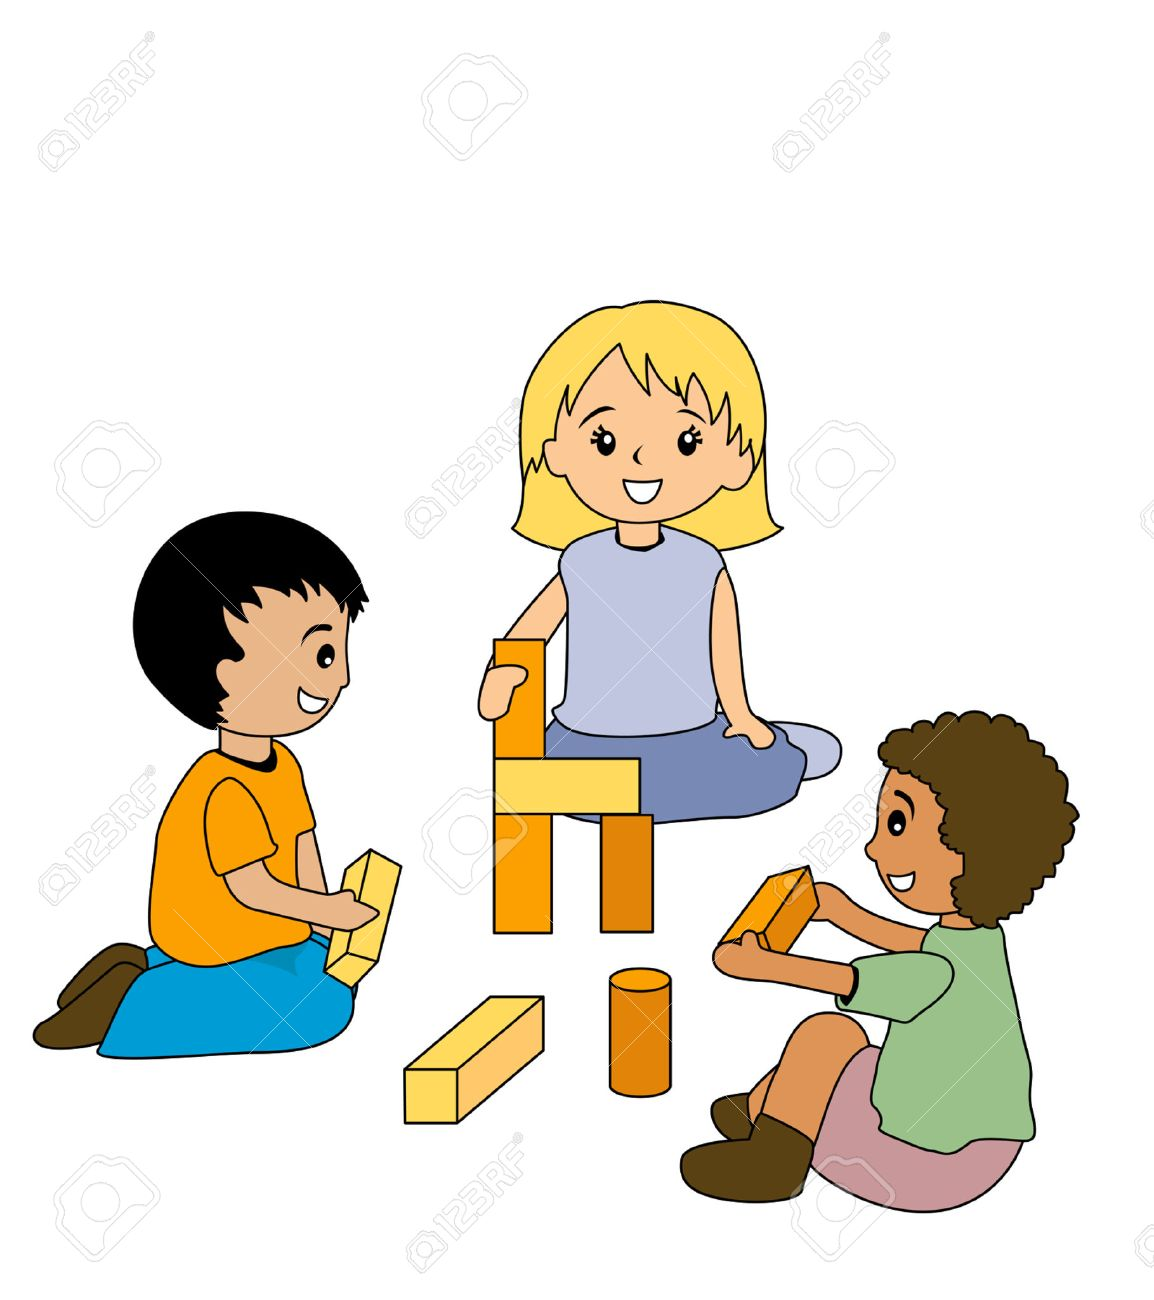 Kids Playing With Blocks Clipart